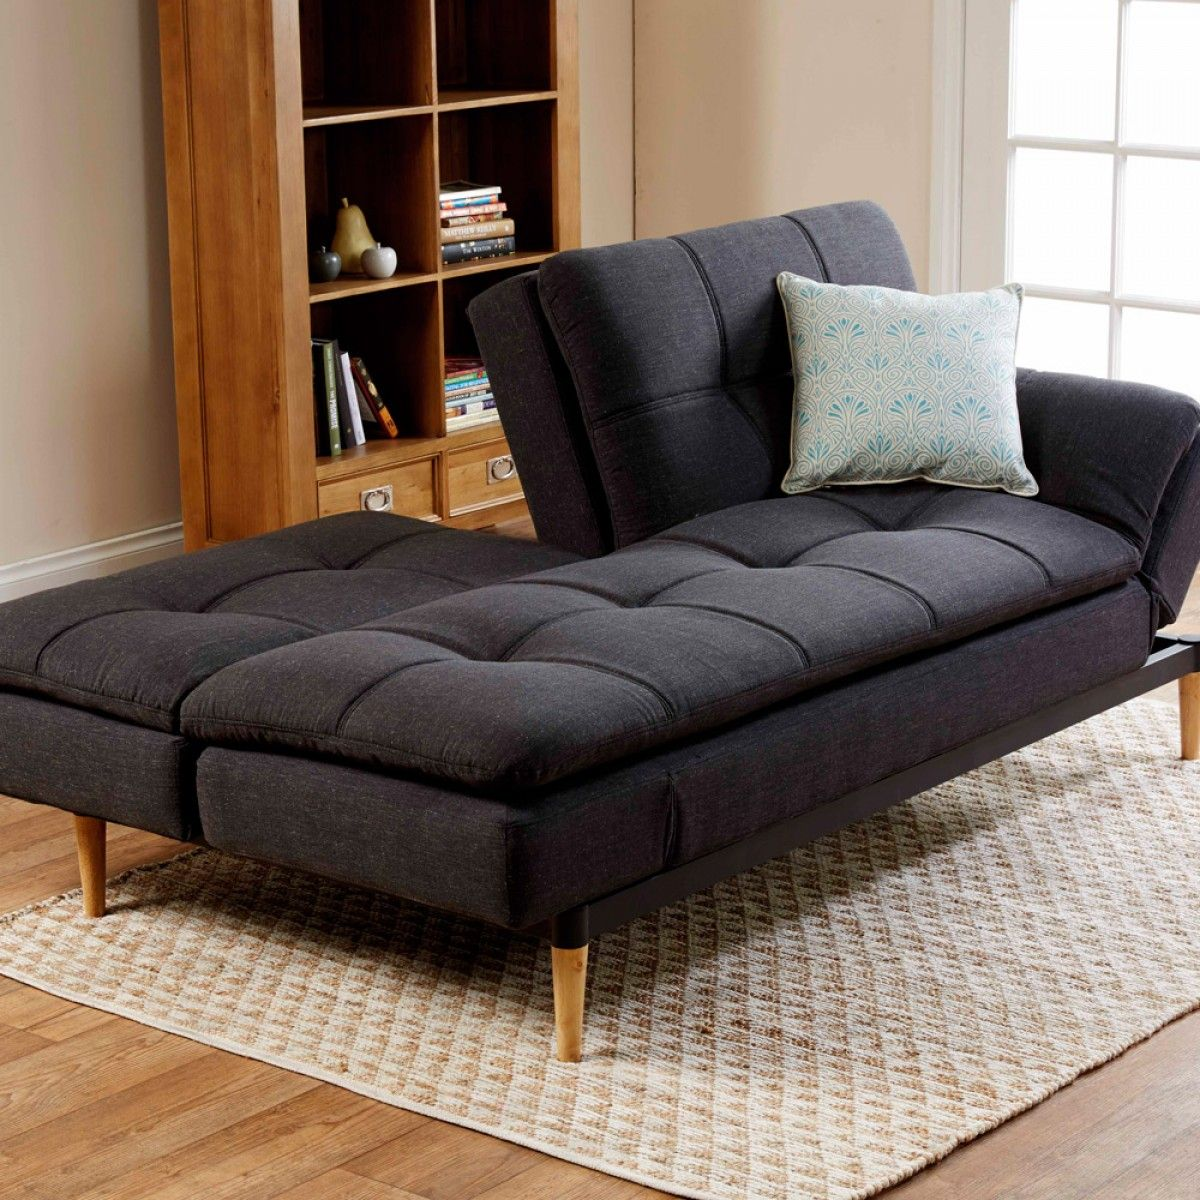 da vinci sofa bed charcoal fabric lounges upholstery my office